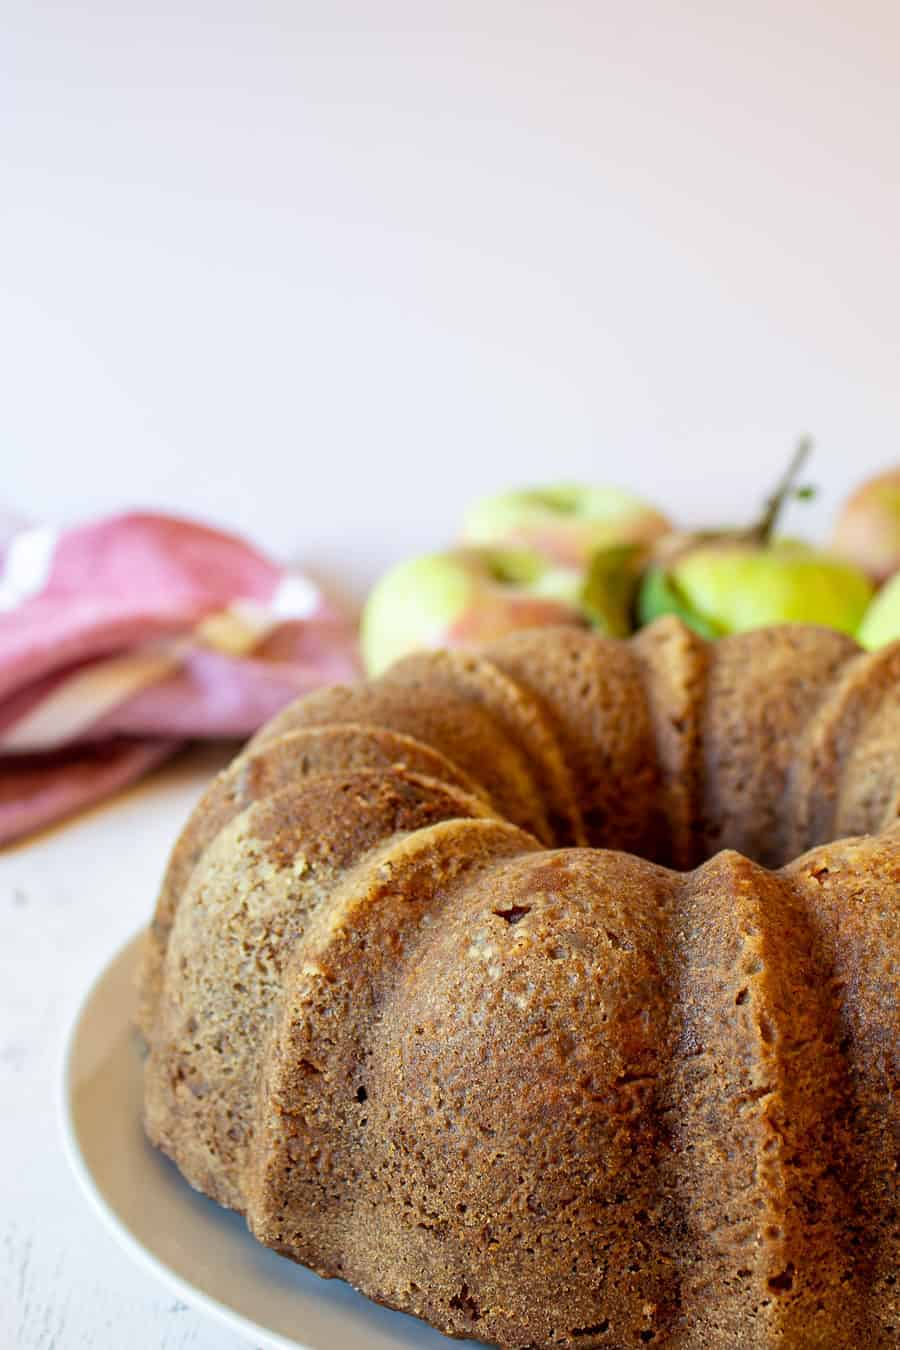 Apple Cake baked into a round bundt cake.